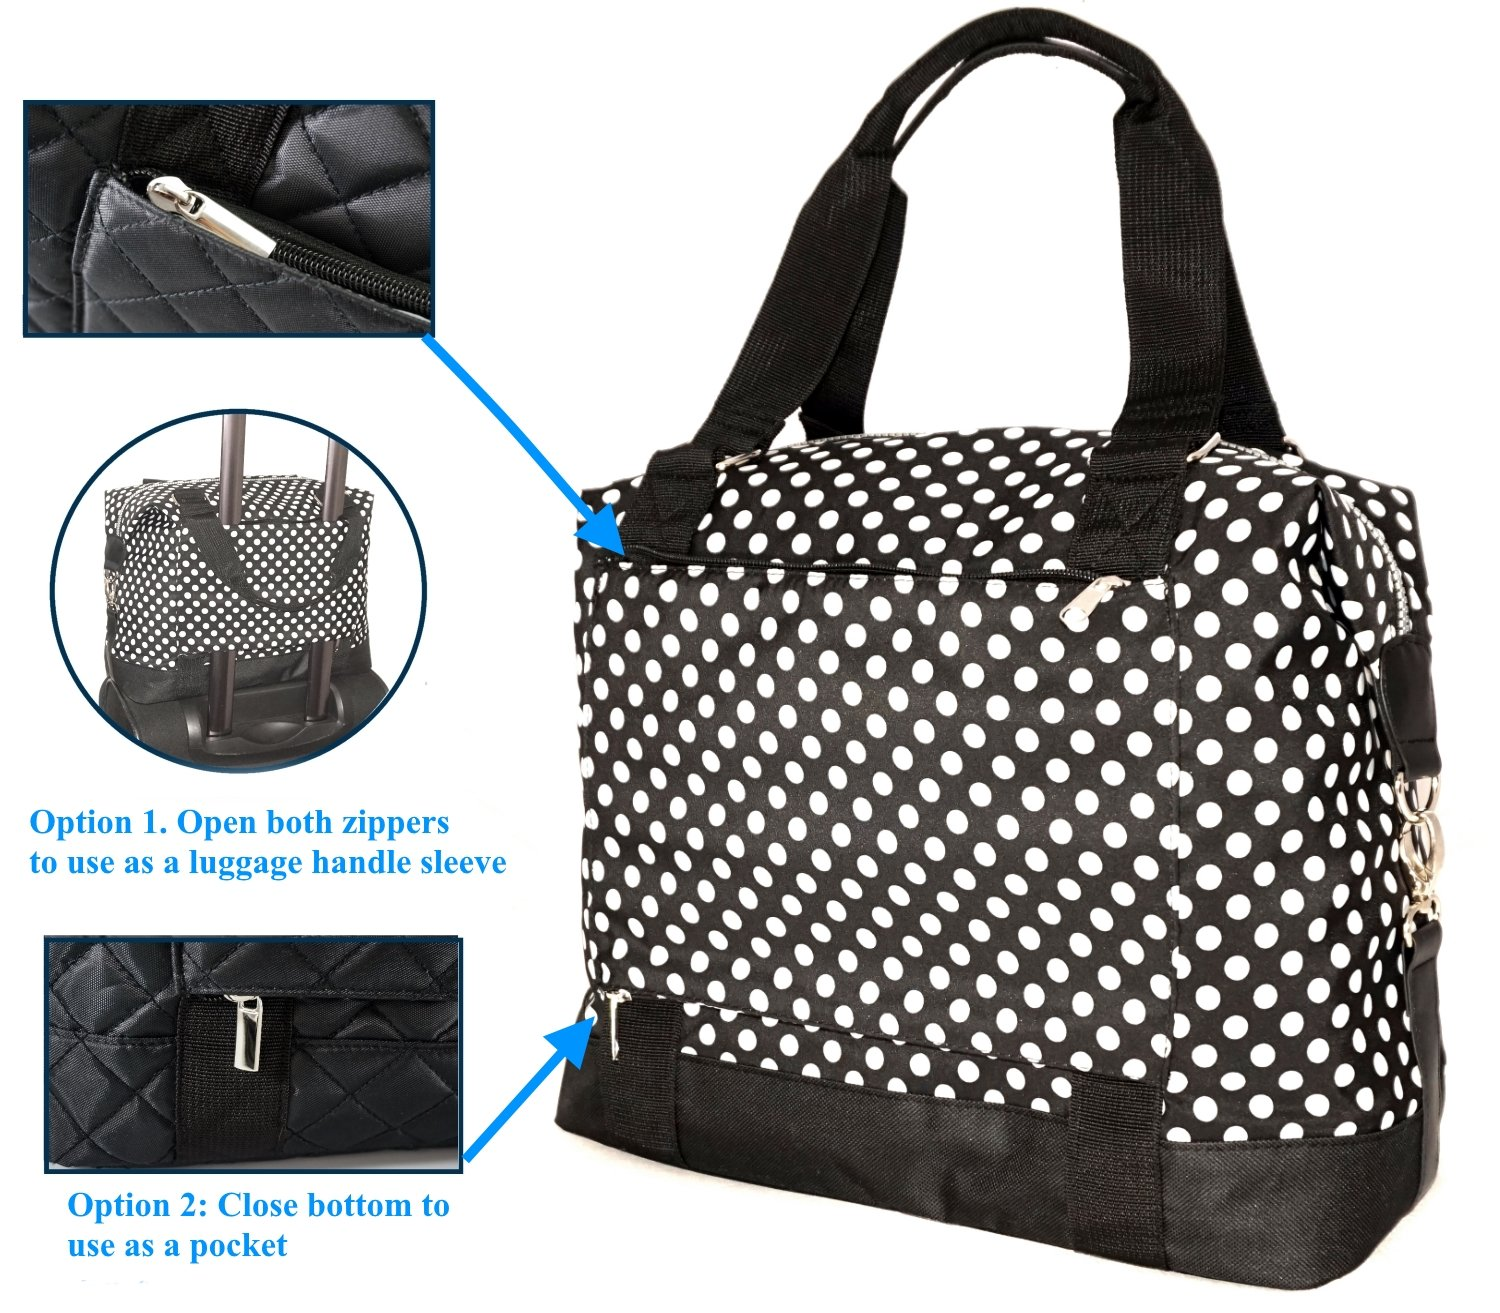 Travel Weekender Overnight Carry-on Under the Seat Shoulder Tote Bag (Small, Black & White Polka Dot) by Simplily Co. (Image #3)